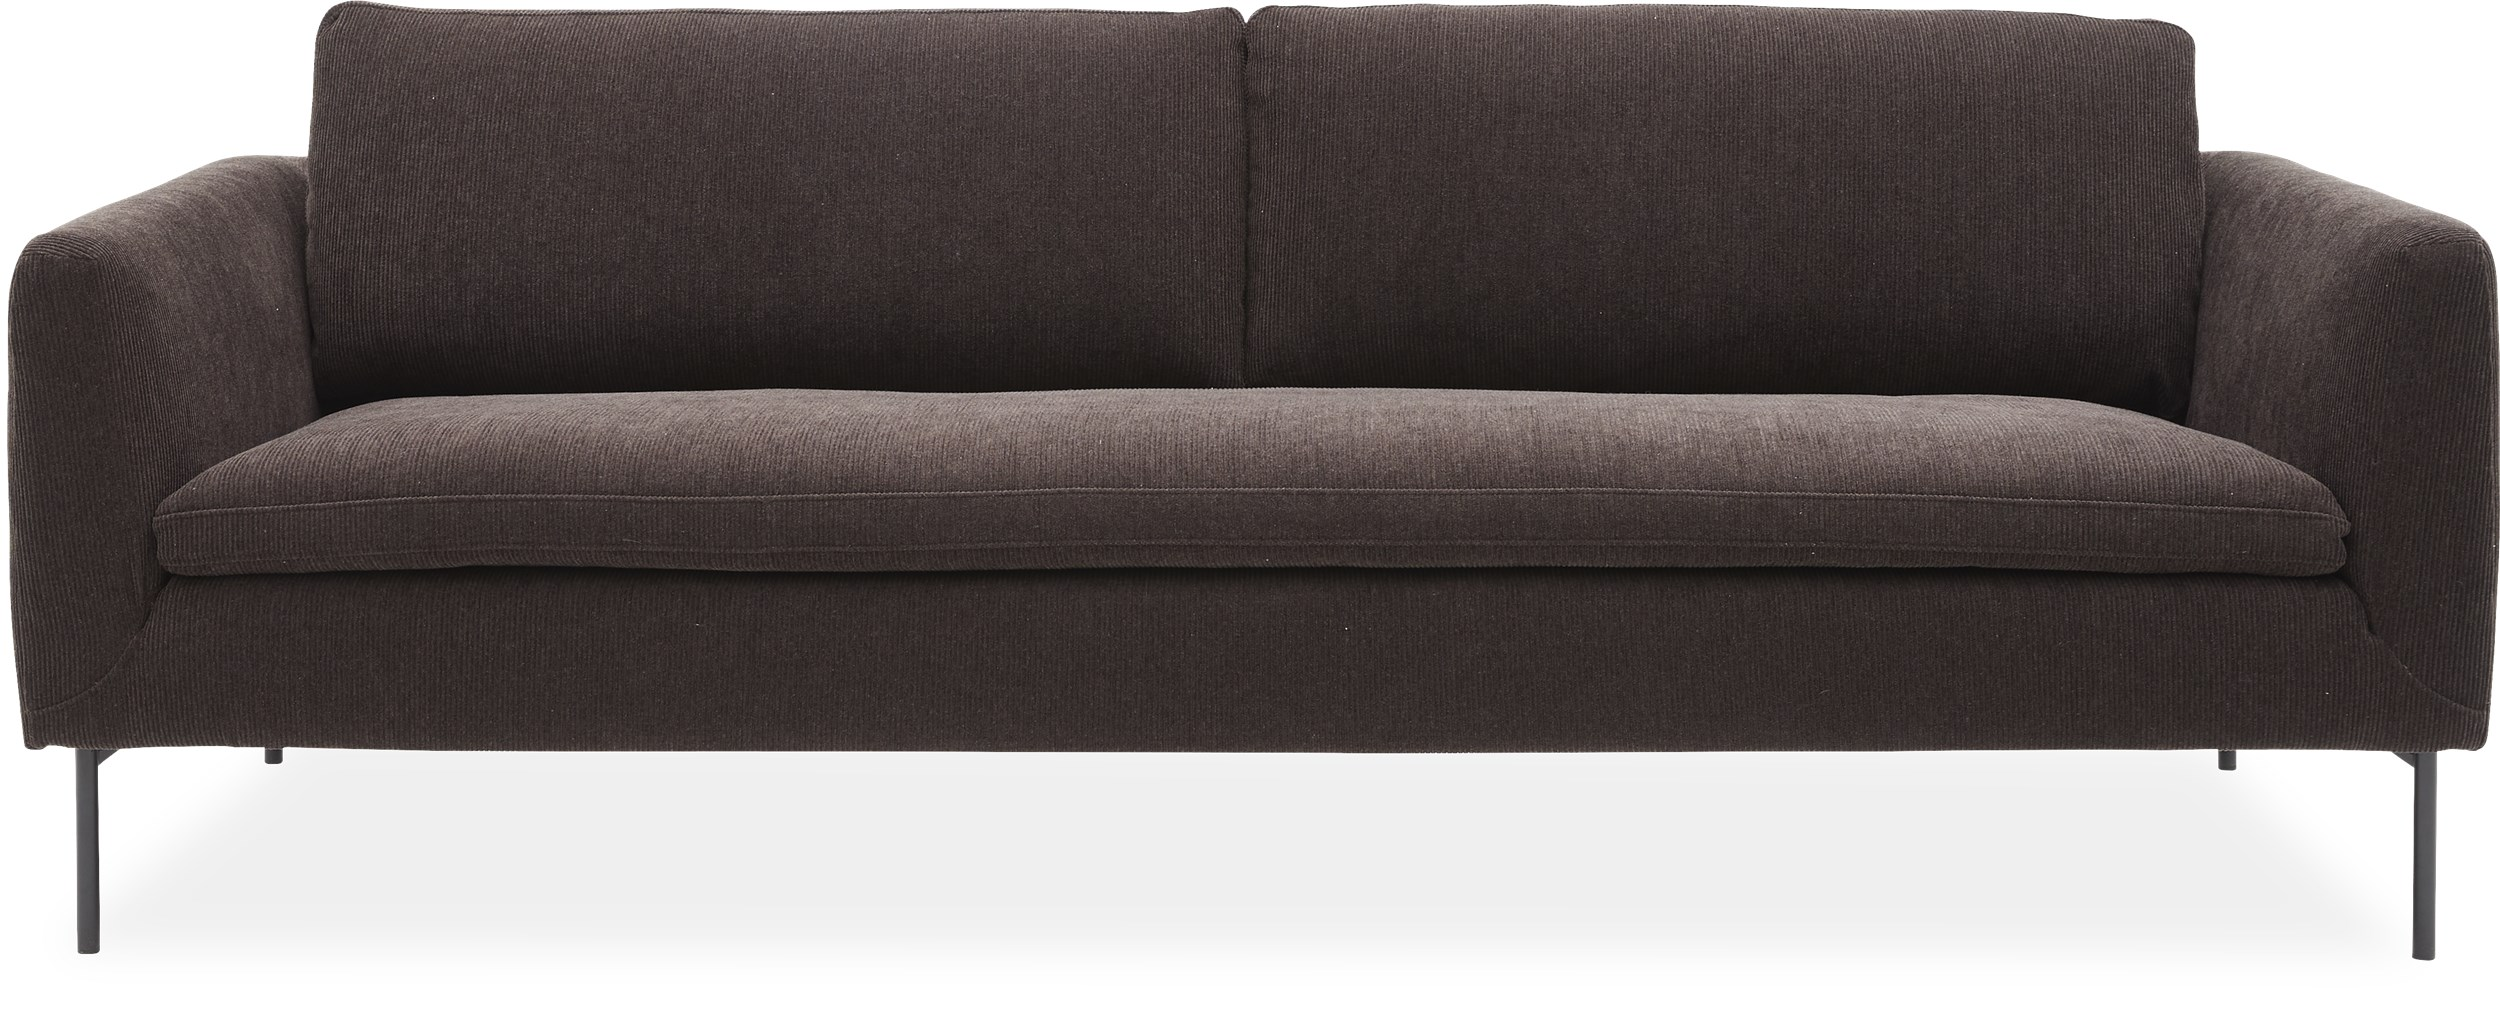 Farris Lux 3 pers Sofa - Moss 4 D. brown stof